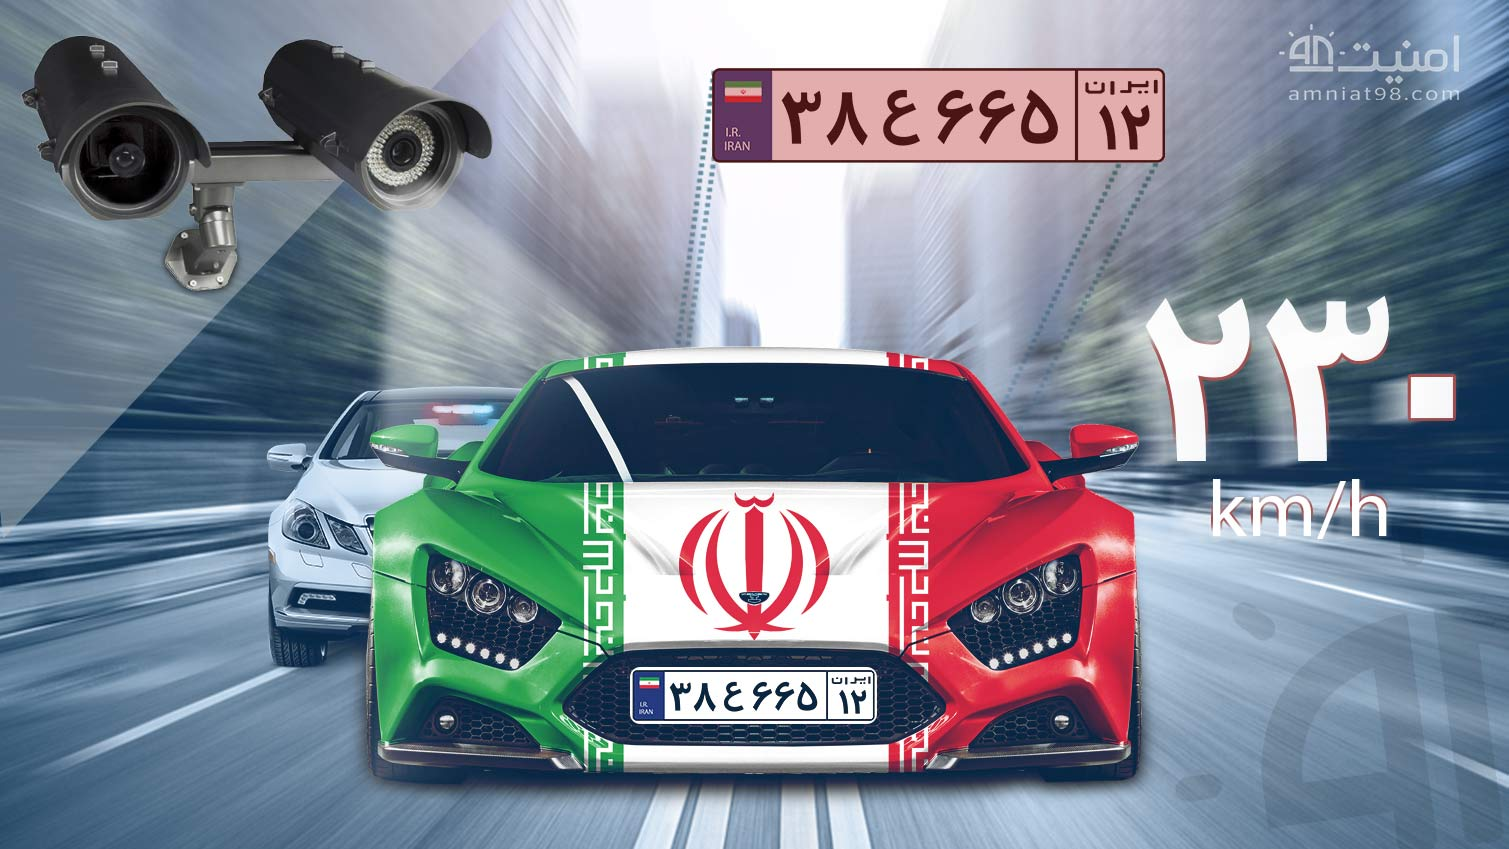 License Plate Recognition Cameras amniat98 - دوربین پلاک خوان + ویدیو